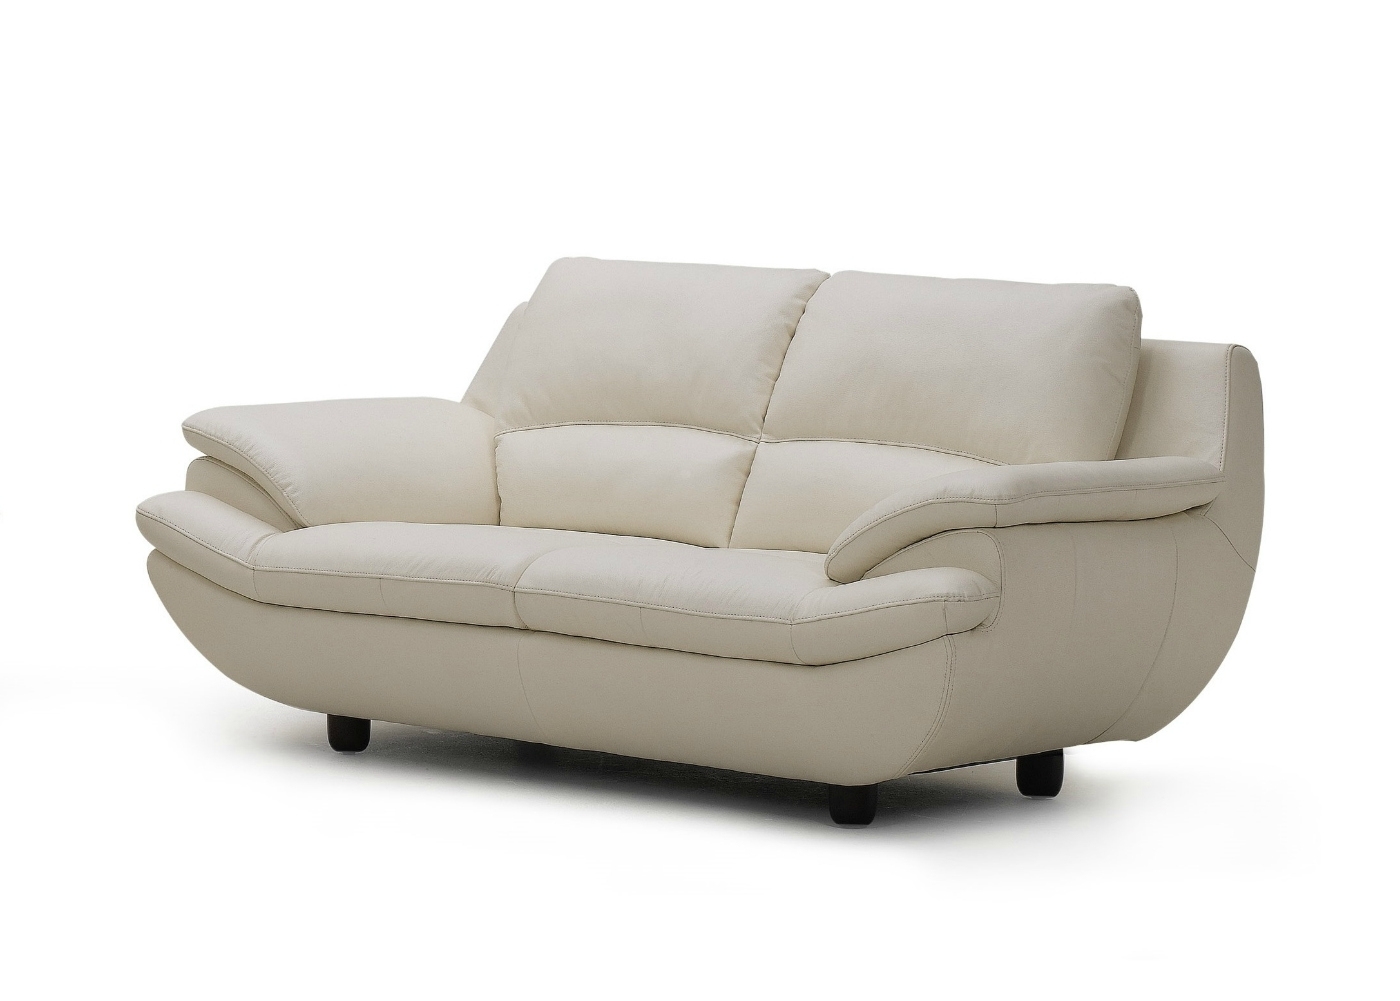 Off White Leather Sofas In Recent Plush Leather Sofa In Off White – Not Just Brown (View 8 of 15)